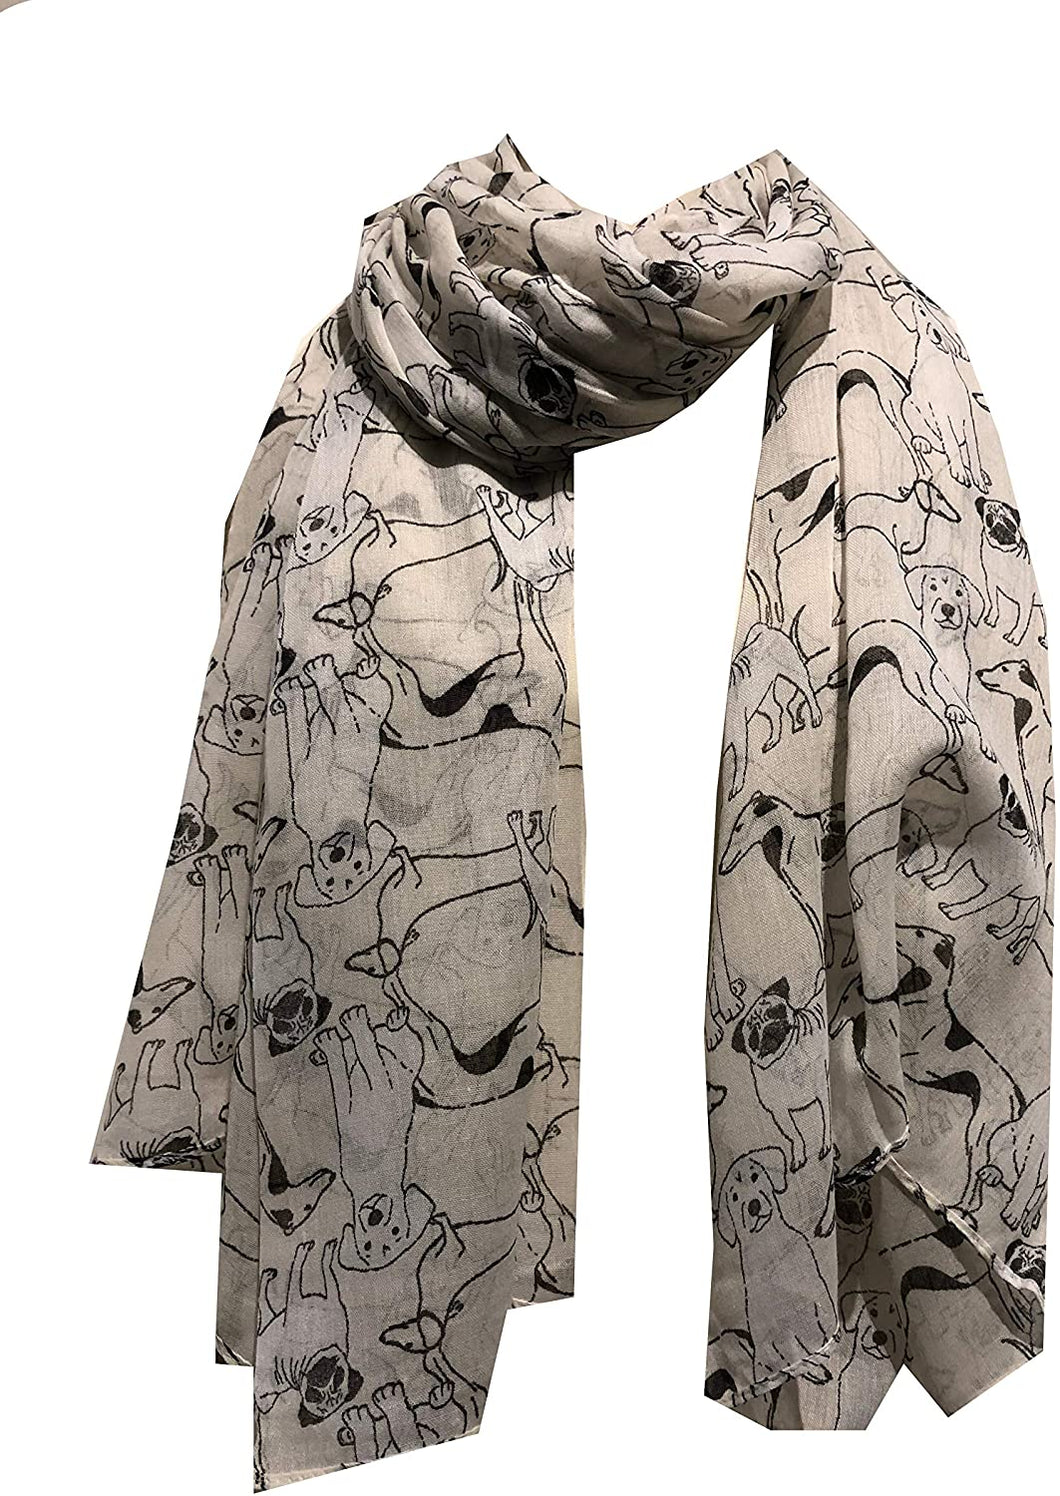 Pamper Yourself Now Cream Sketched Mixed Dog Design Scarf Pug, Sausage Dog, Labrador and whippit